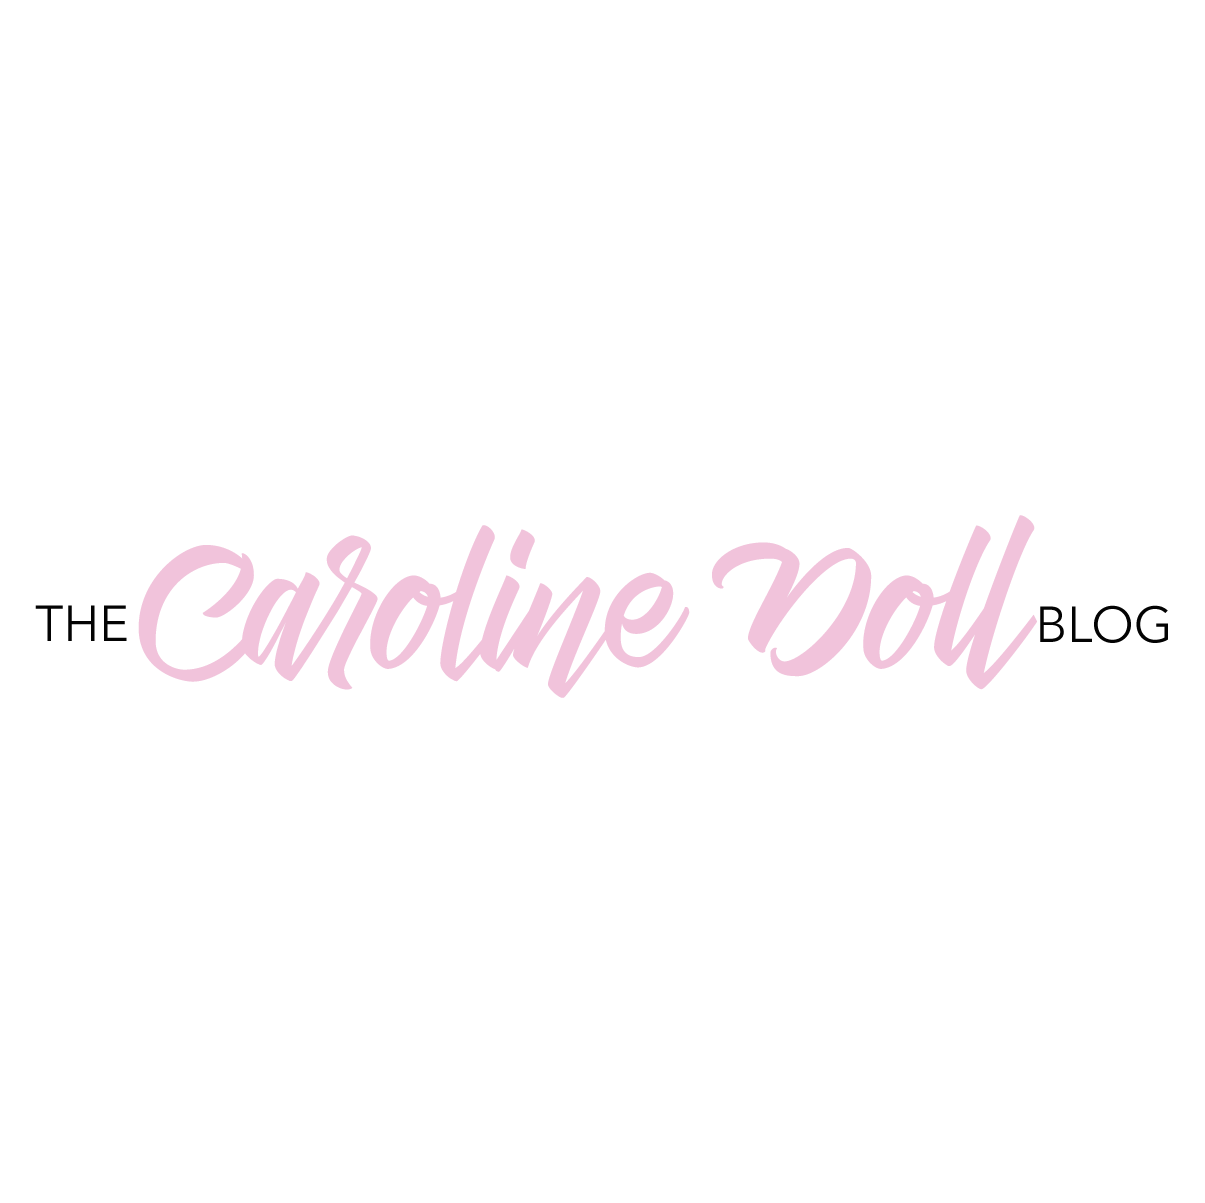 The Caroline Doll Blog